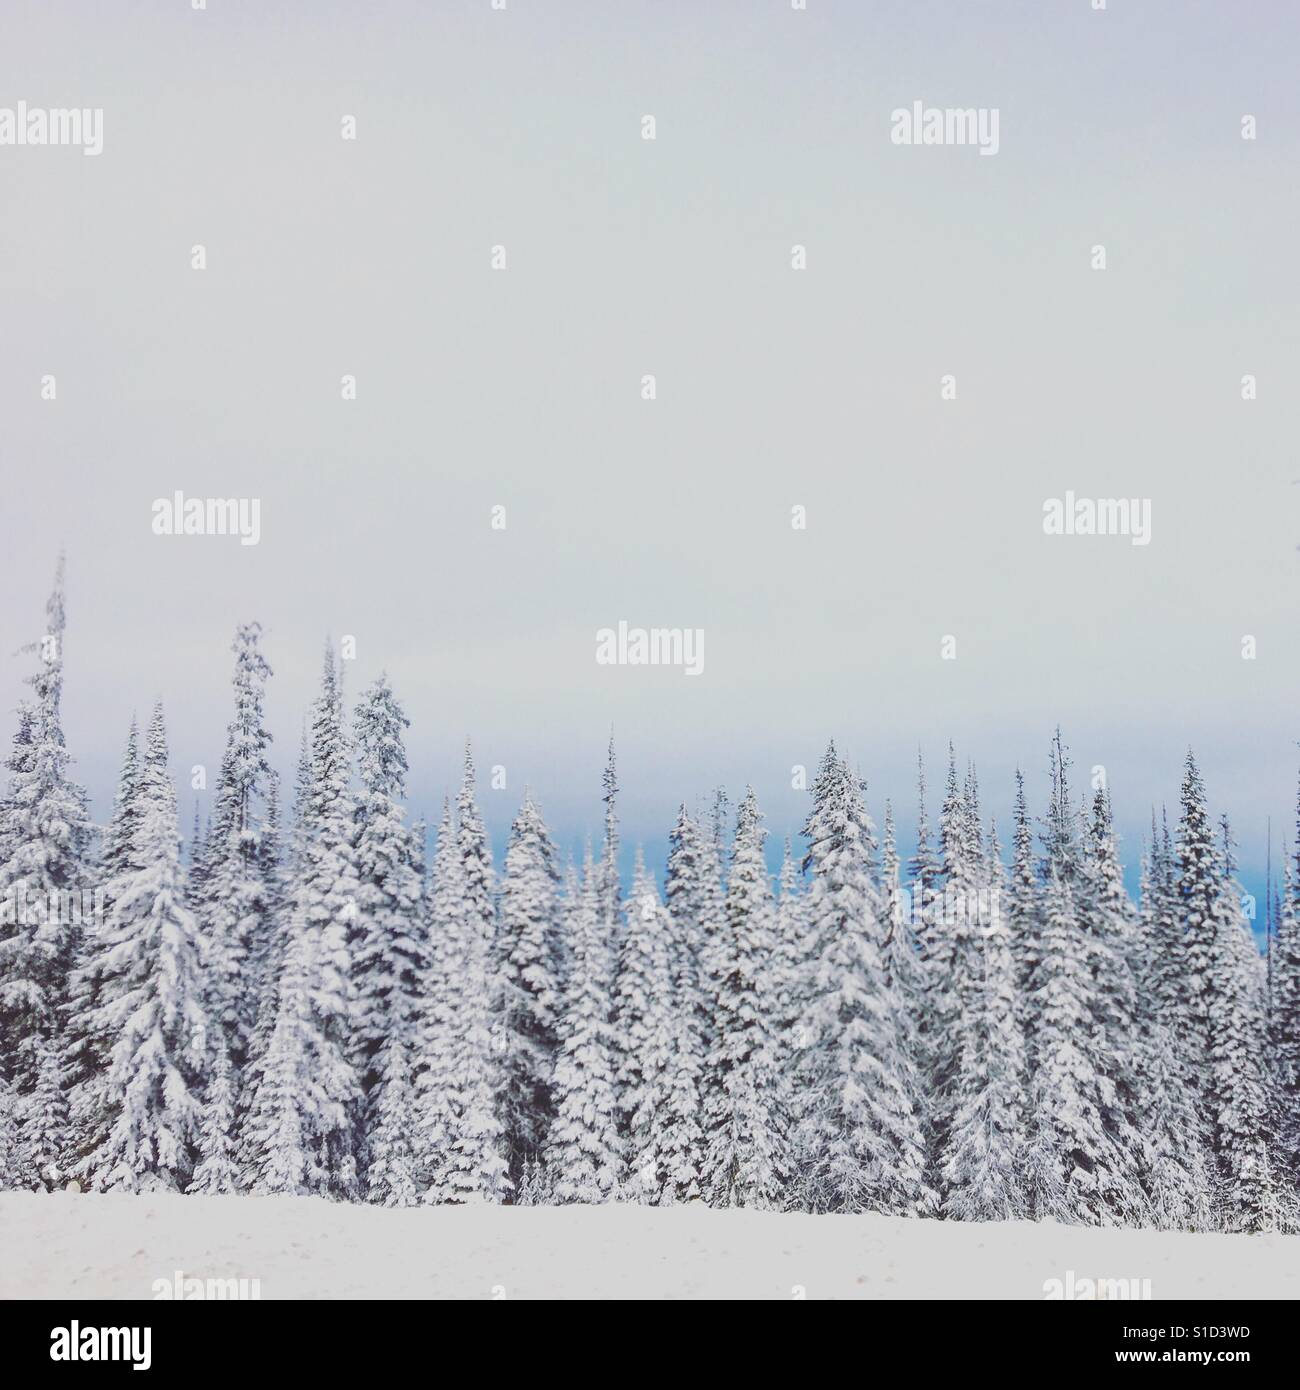 Line up of snow covered evergreen trees. Square crop. Stock Foto